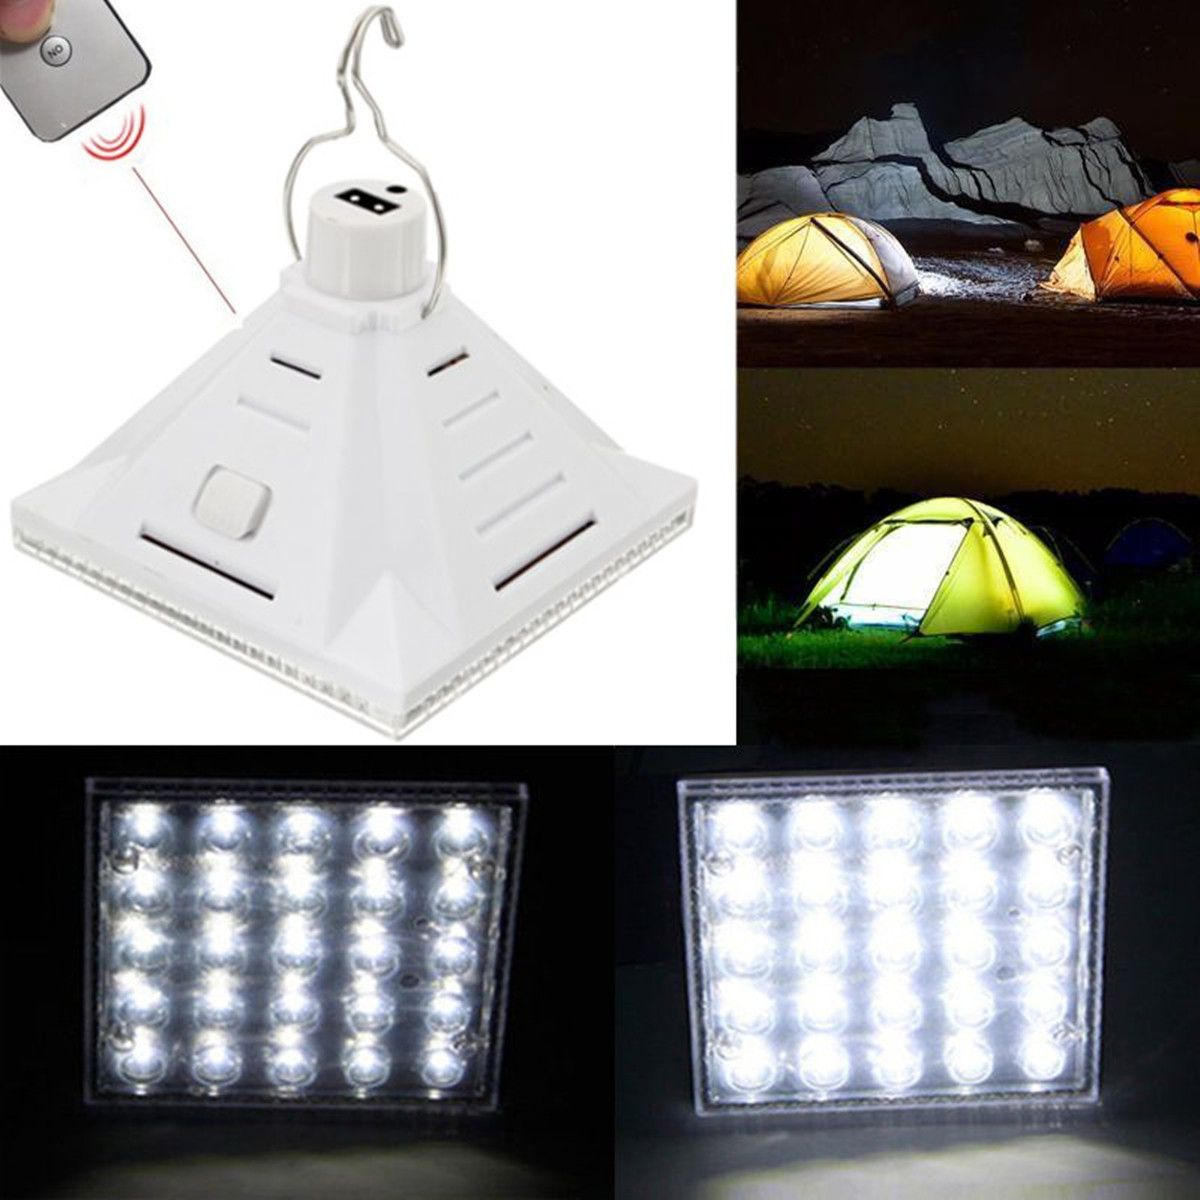 25LED White Solar Powered C&ing L& Remote Control Hanging Outdoor Tent Light  sc 1 st  Pinterest & 25LED White Solar Powered Camping Lamp Remote Control Hanging ...